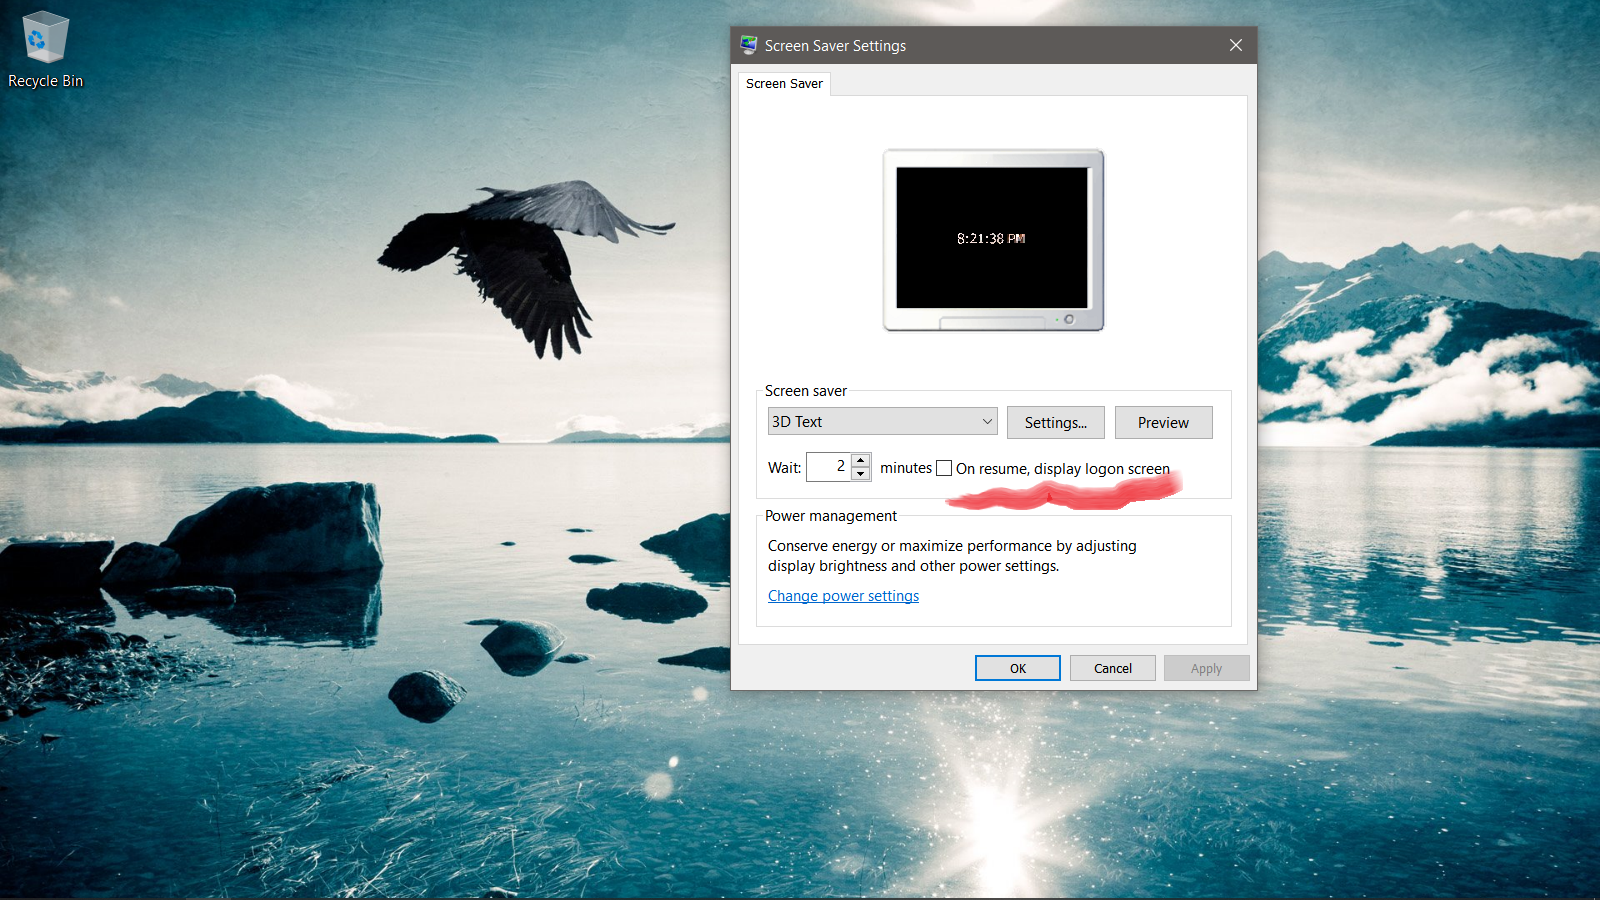 Windows 10: PC goes to lock screen after 2 minutes - Microsoft Community